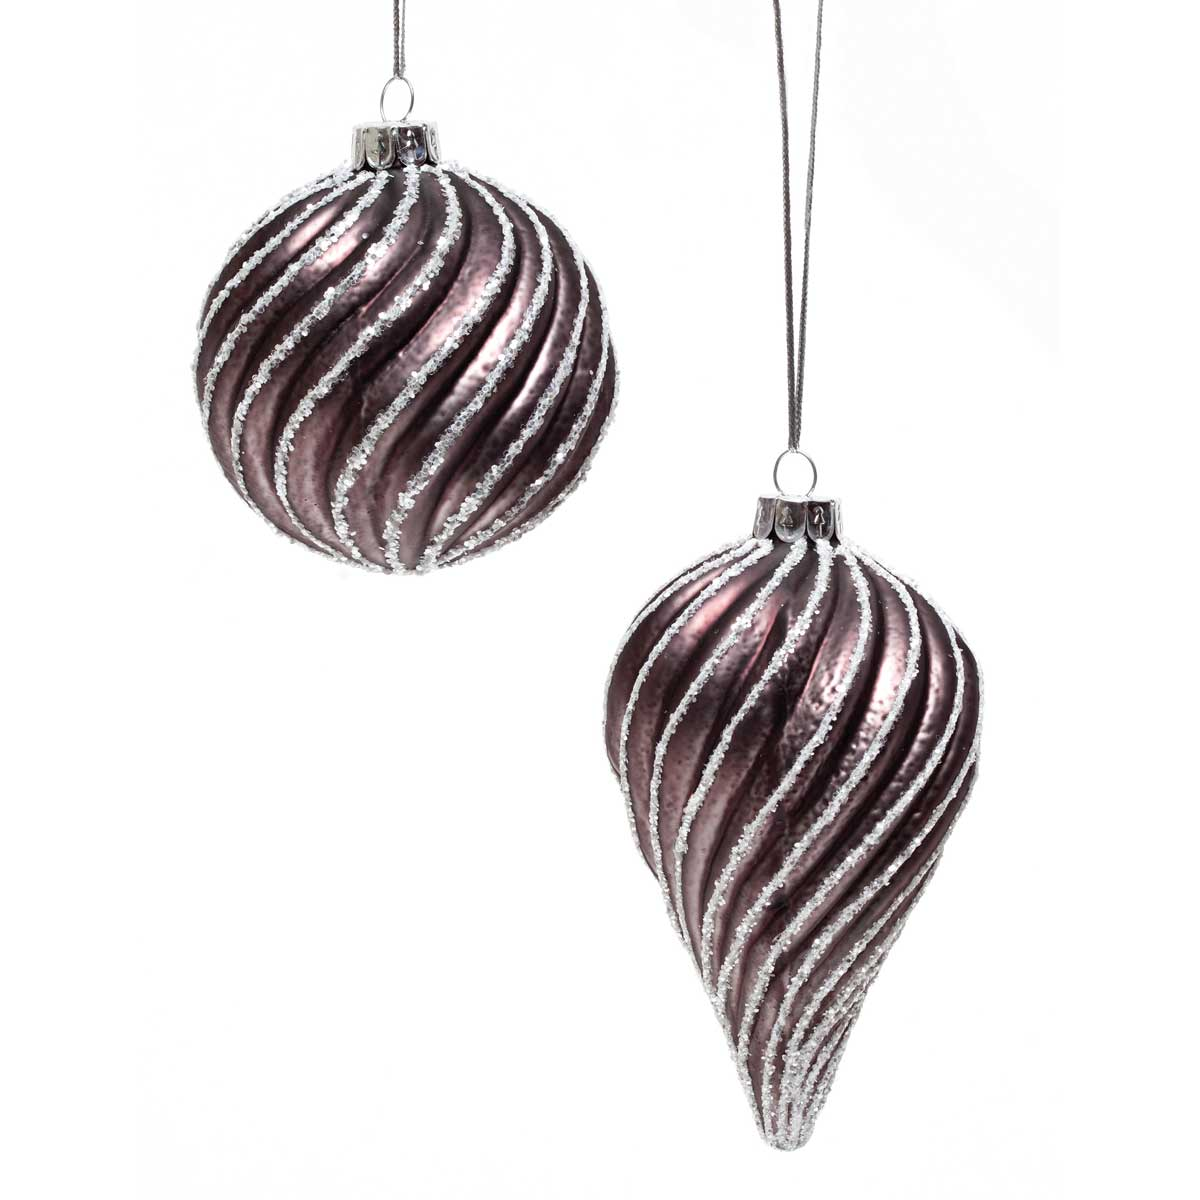 2 Piece Glass Teardrop/Ball Swirl Ornament Set